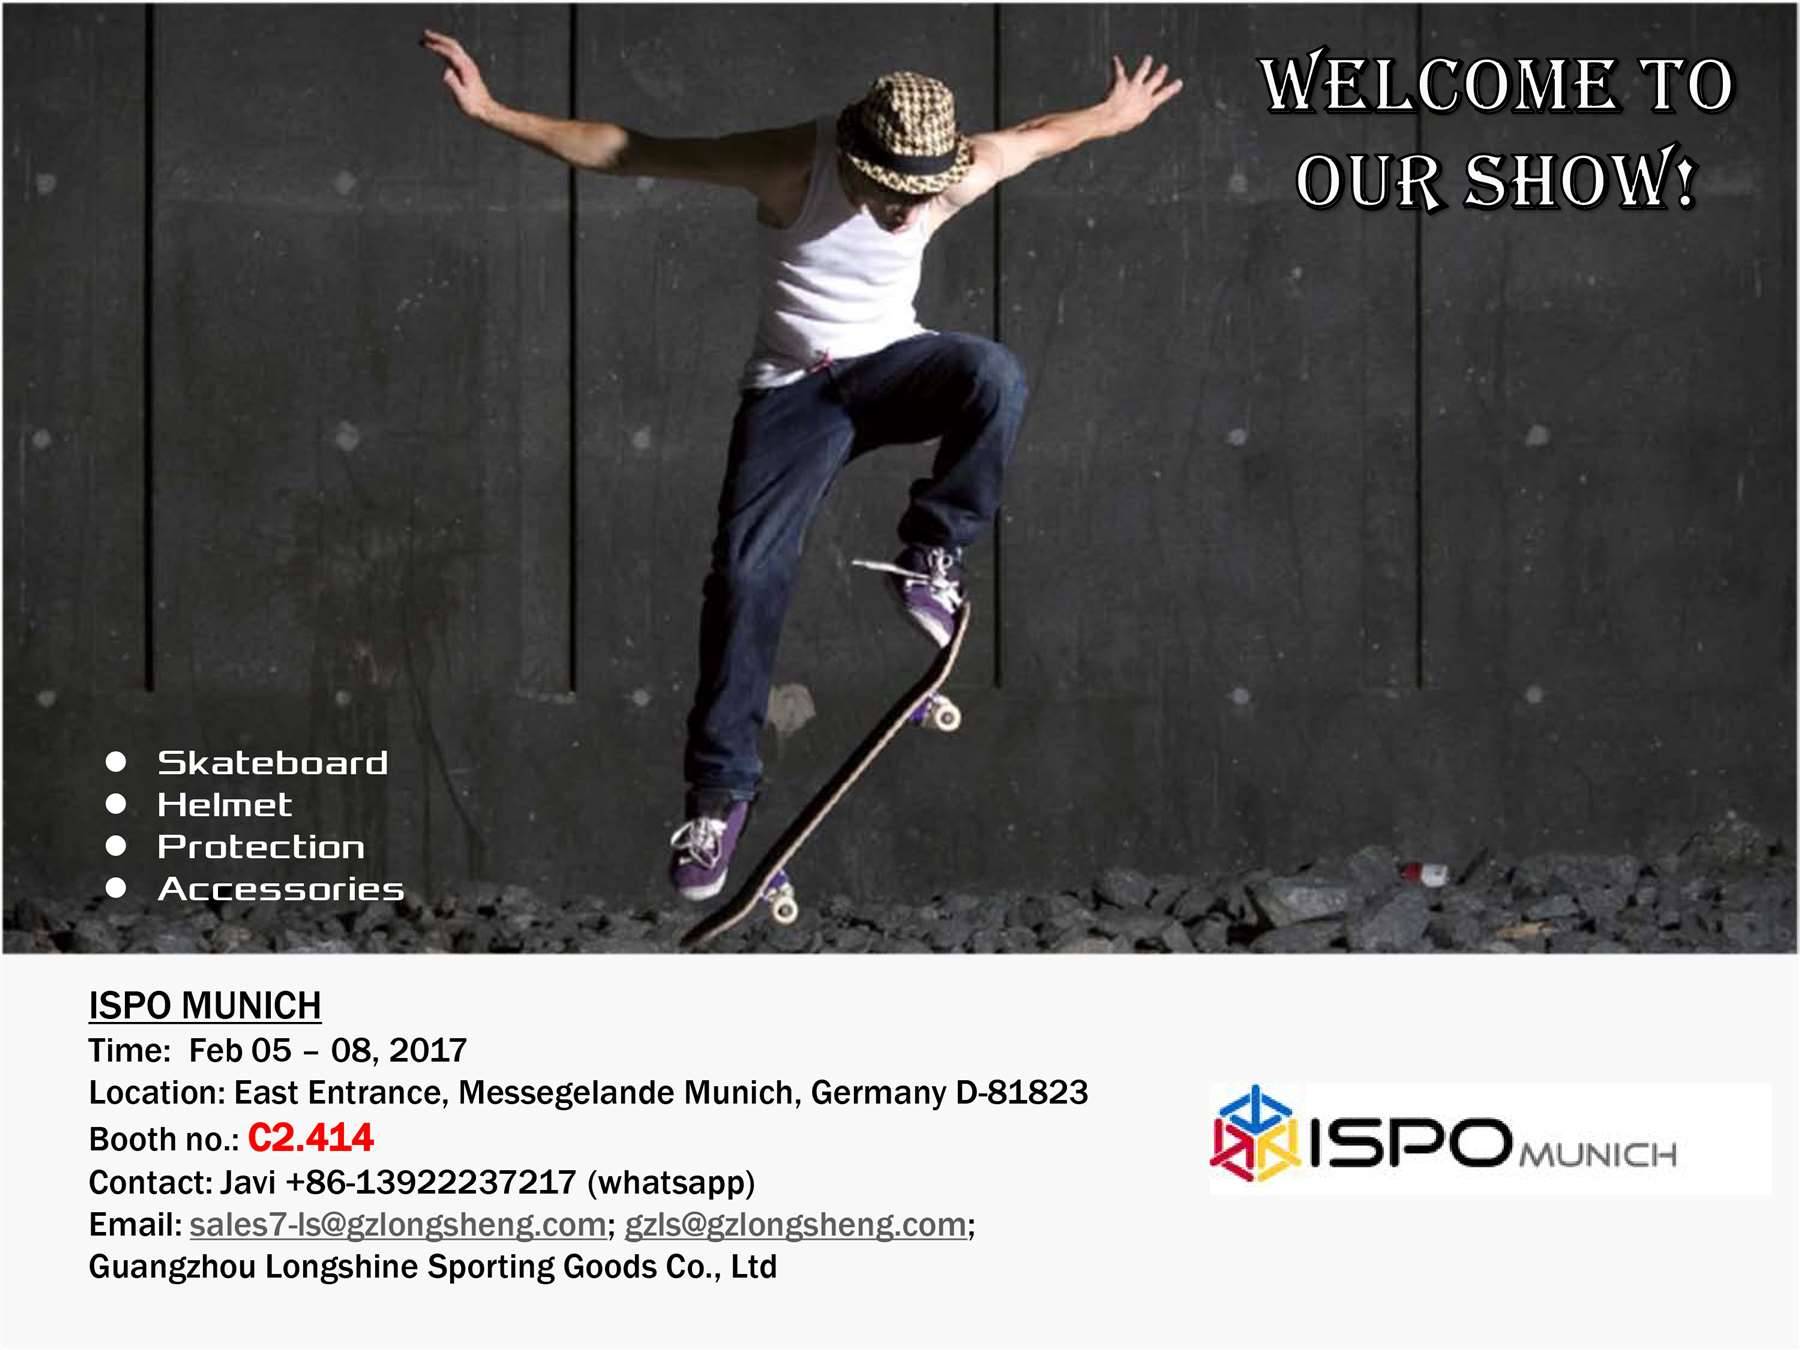 ISPO Munich 2017 Feb 05-08